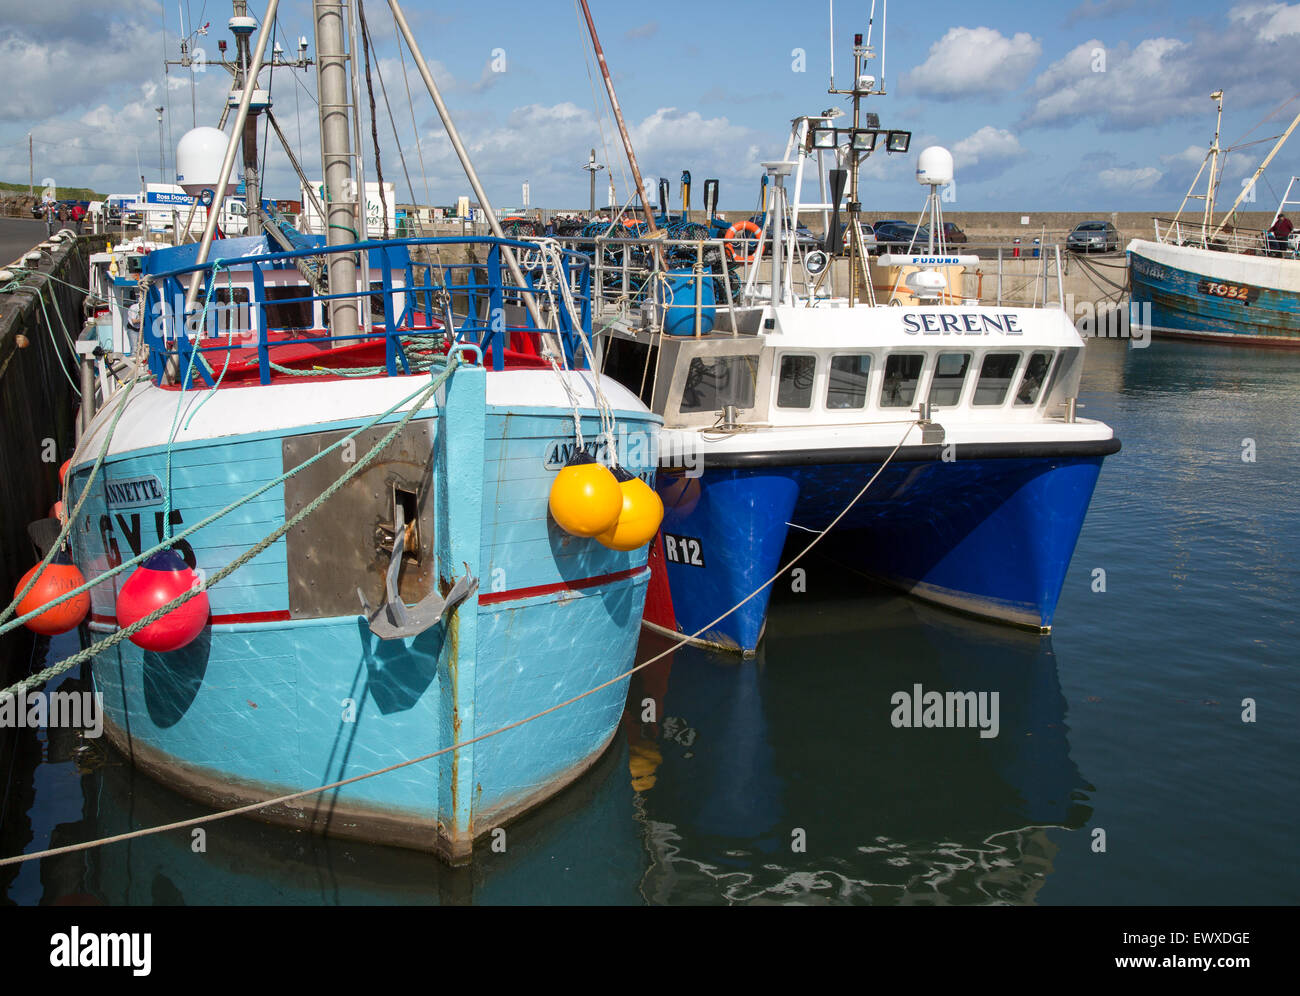 Boats in the harbour at Seahouses, Northumberland, England, UK - Stock Image